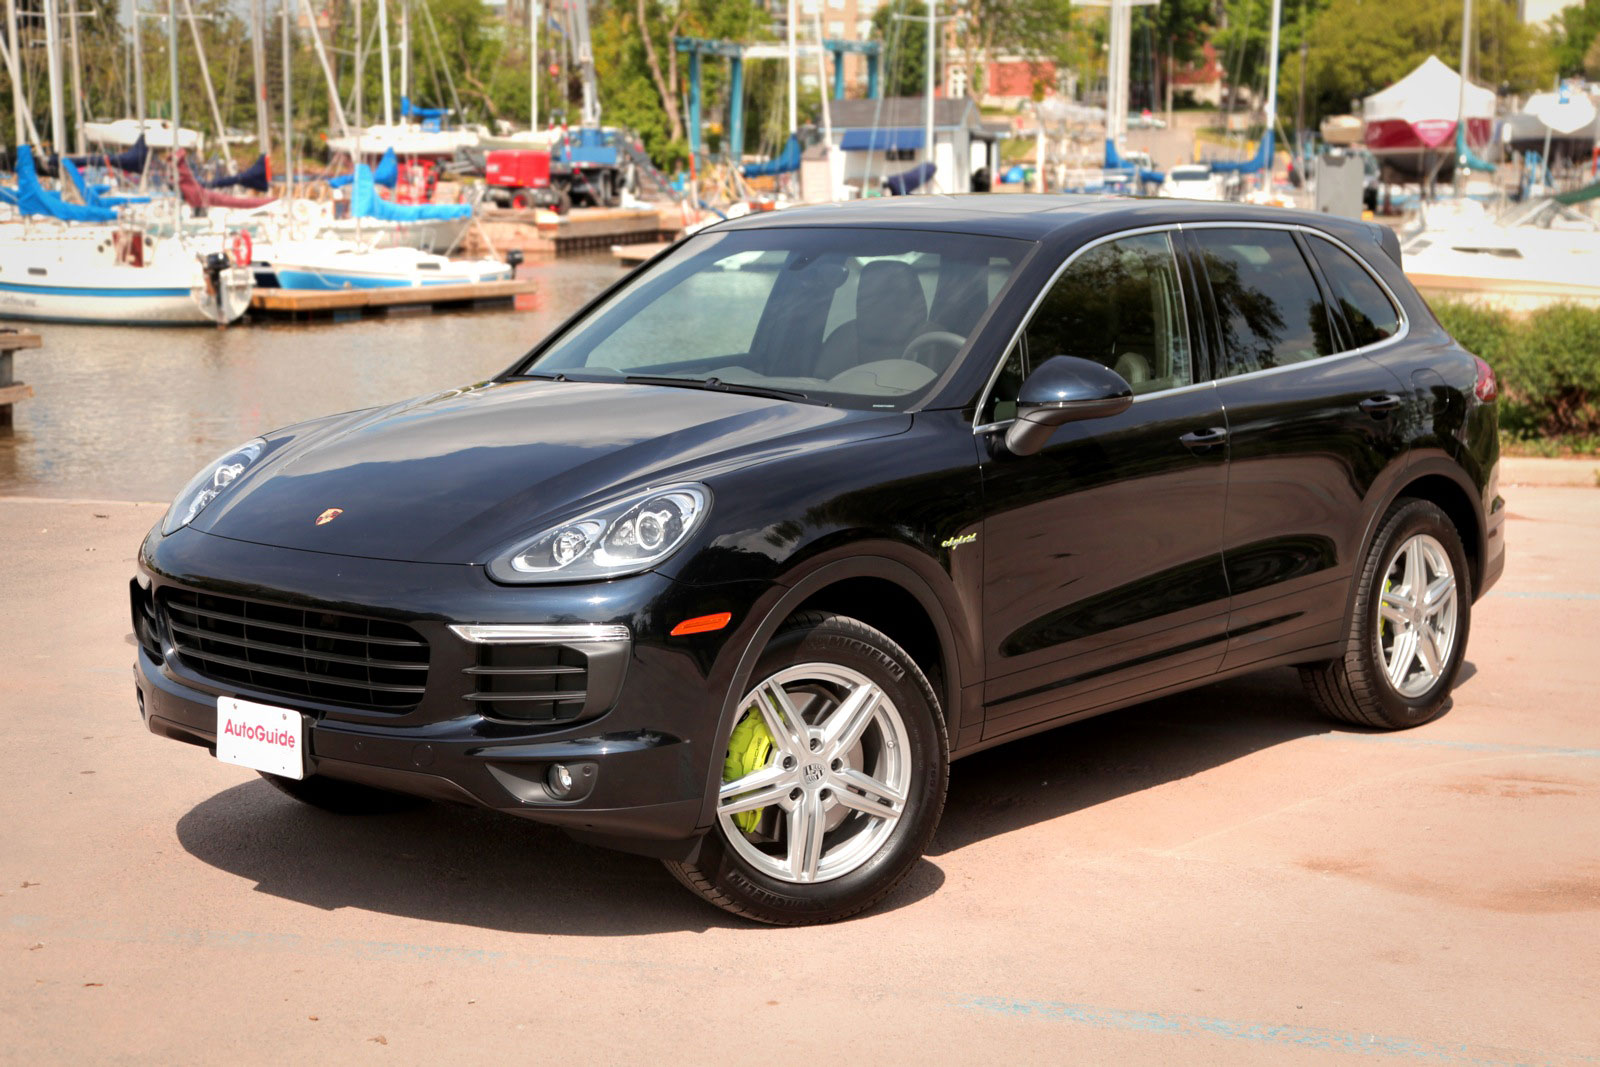 2015 porsche cayenne s e hybrid review porsche macan forum. Black Bedroom Furniture Sets. Home Design Ideas